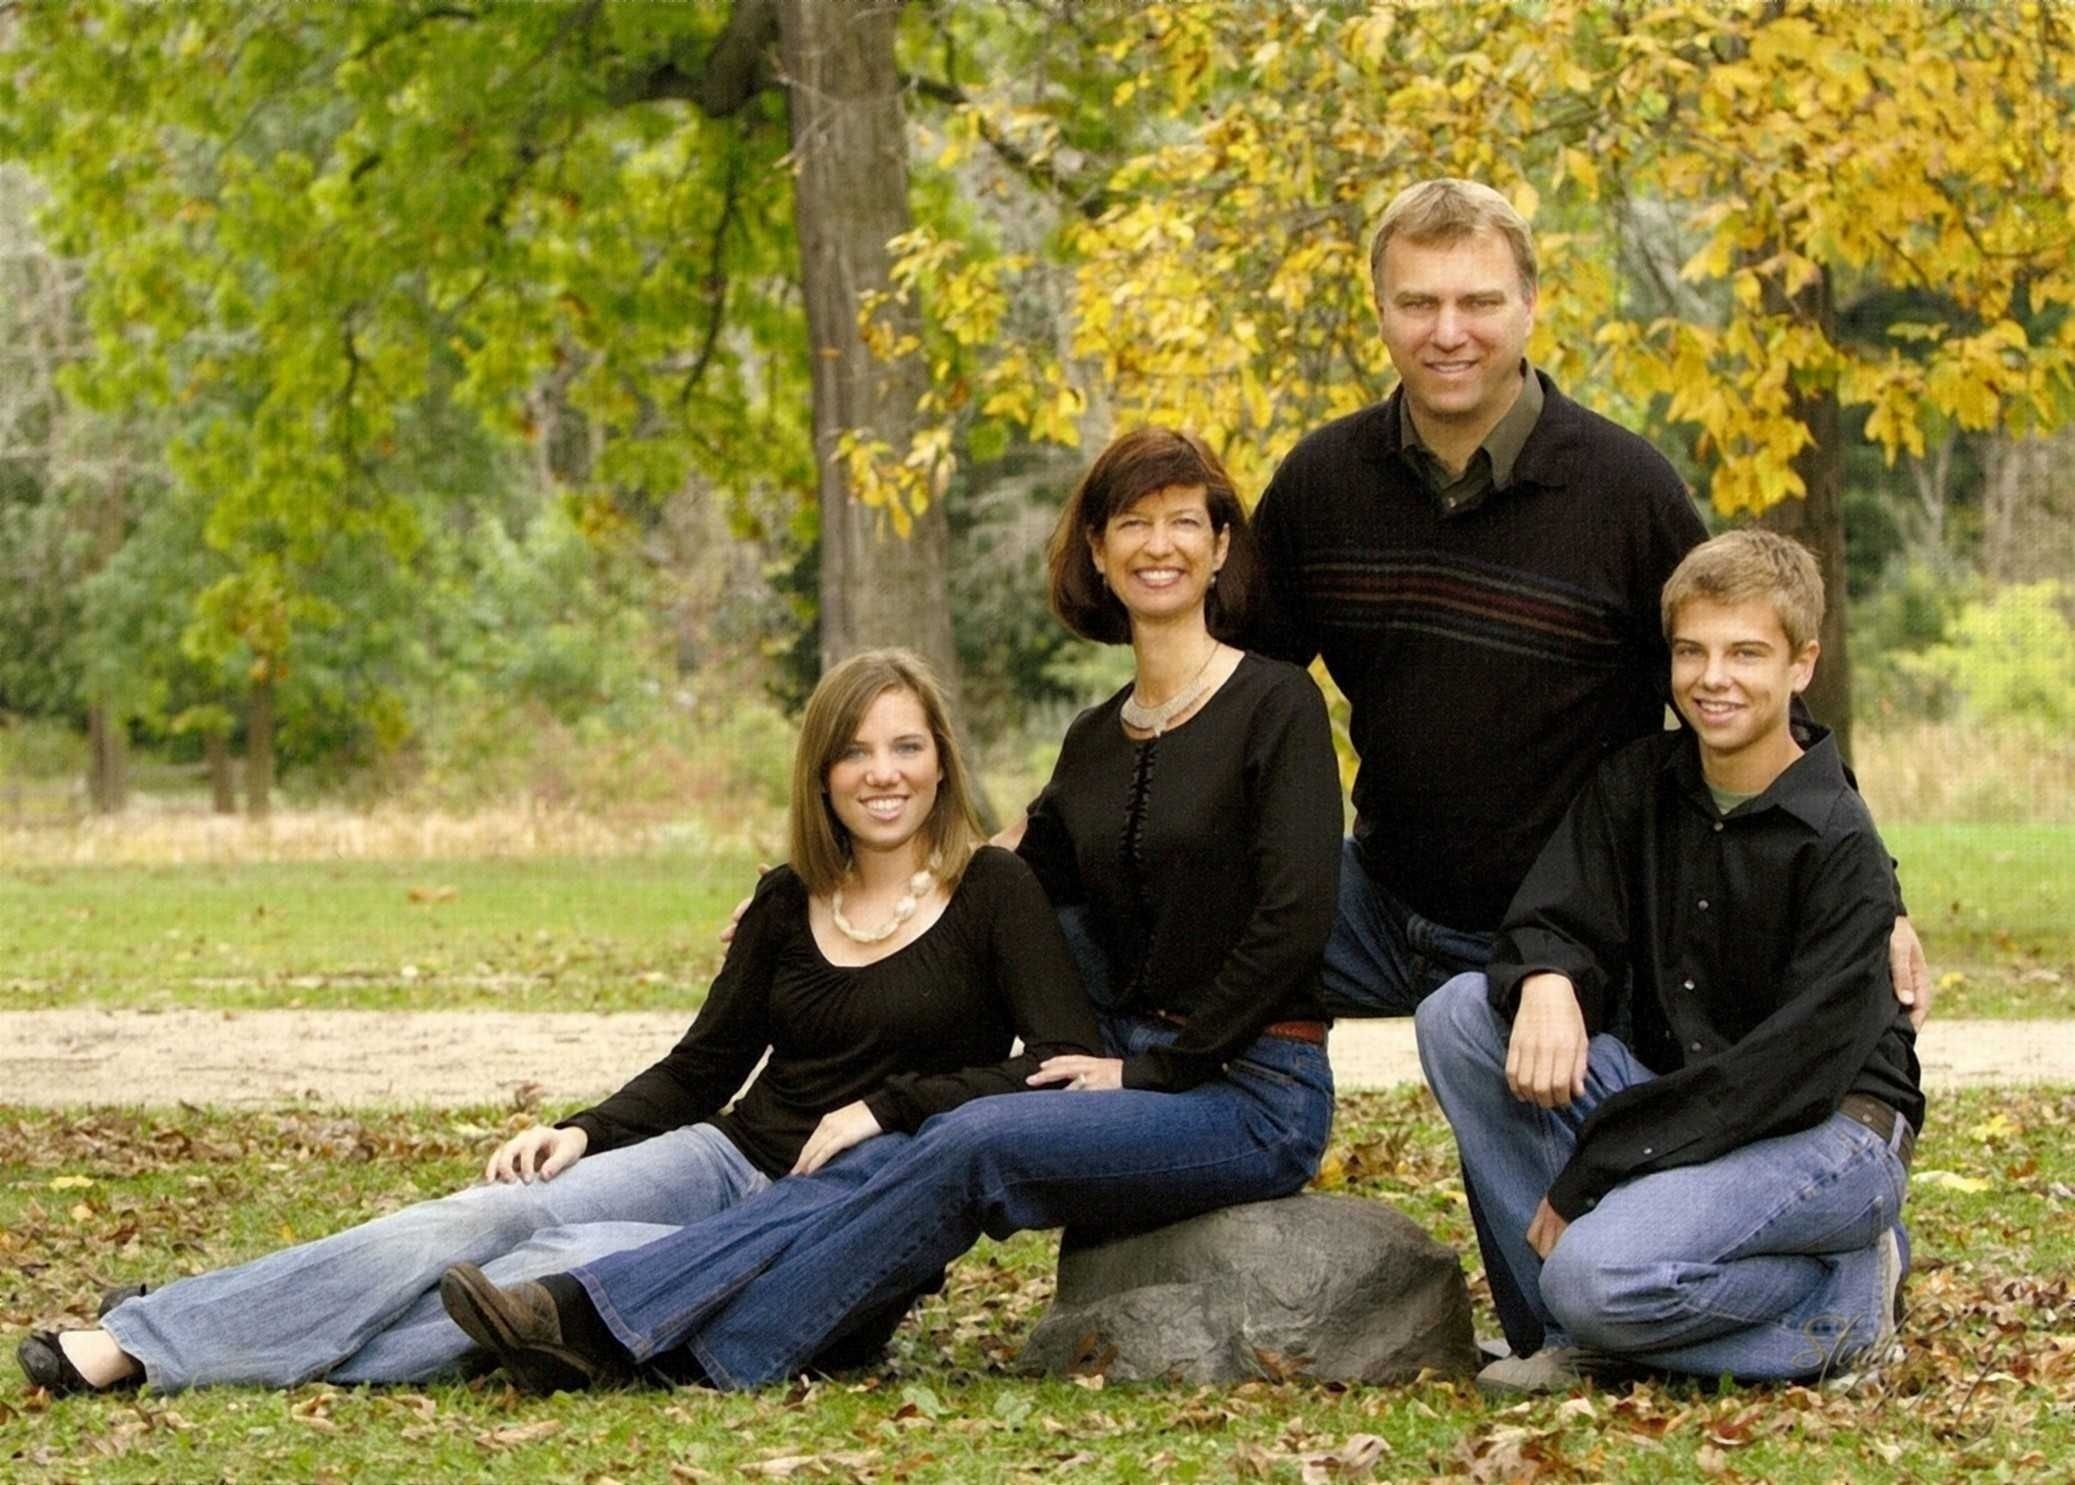 10 Trendy Family Photo Ideas With Teenagers outdoor photography poses family with teens jill is a mother of 2020